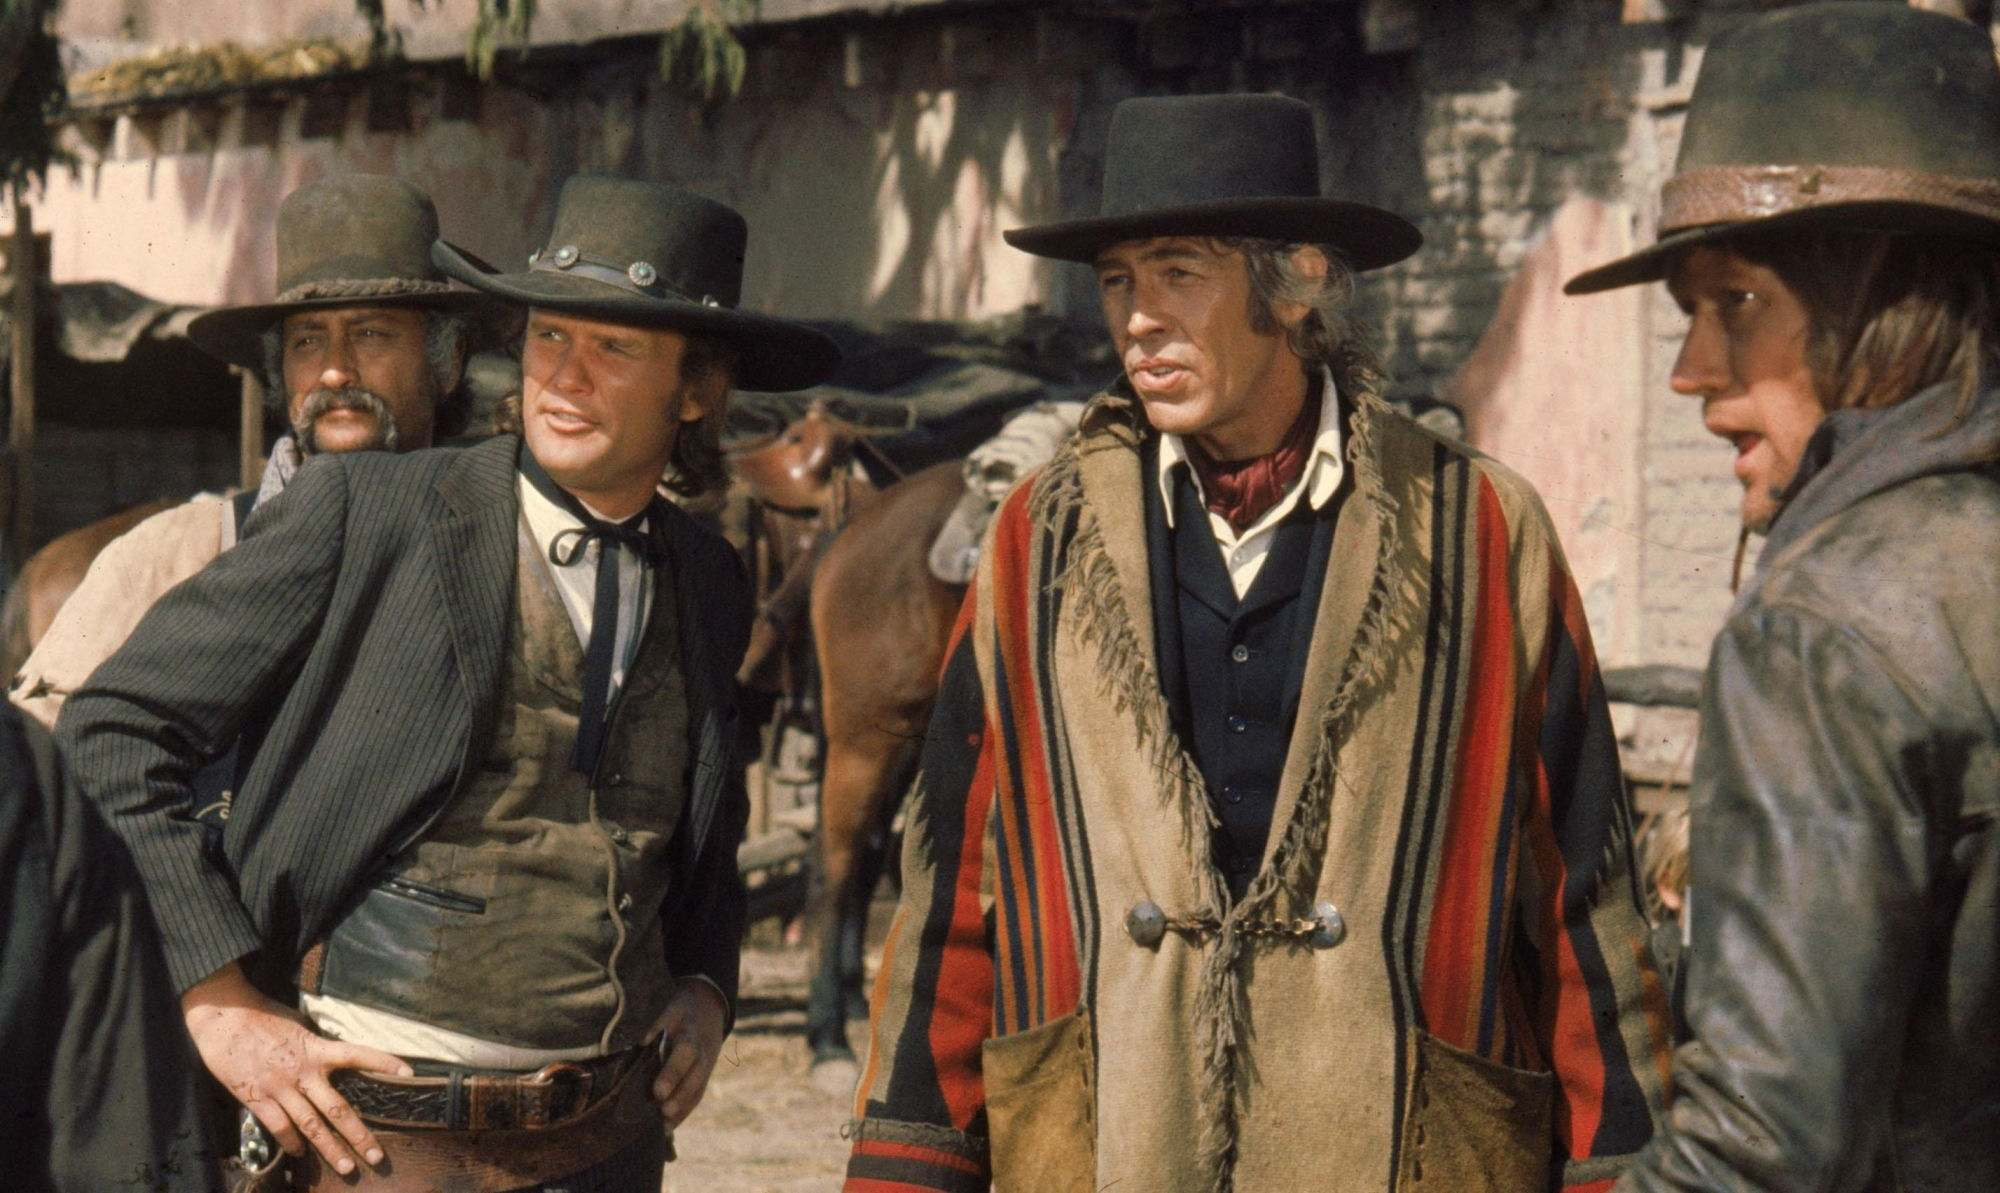 Filmszene aus Pat Garrett jagt Billy the Kid